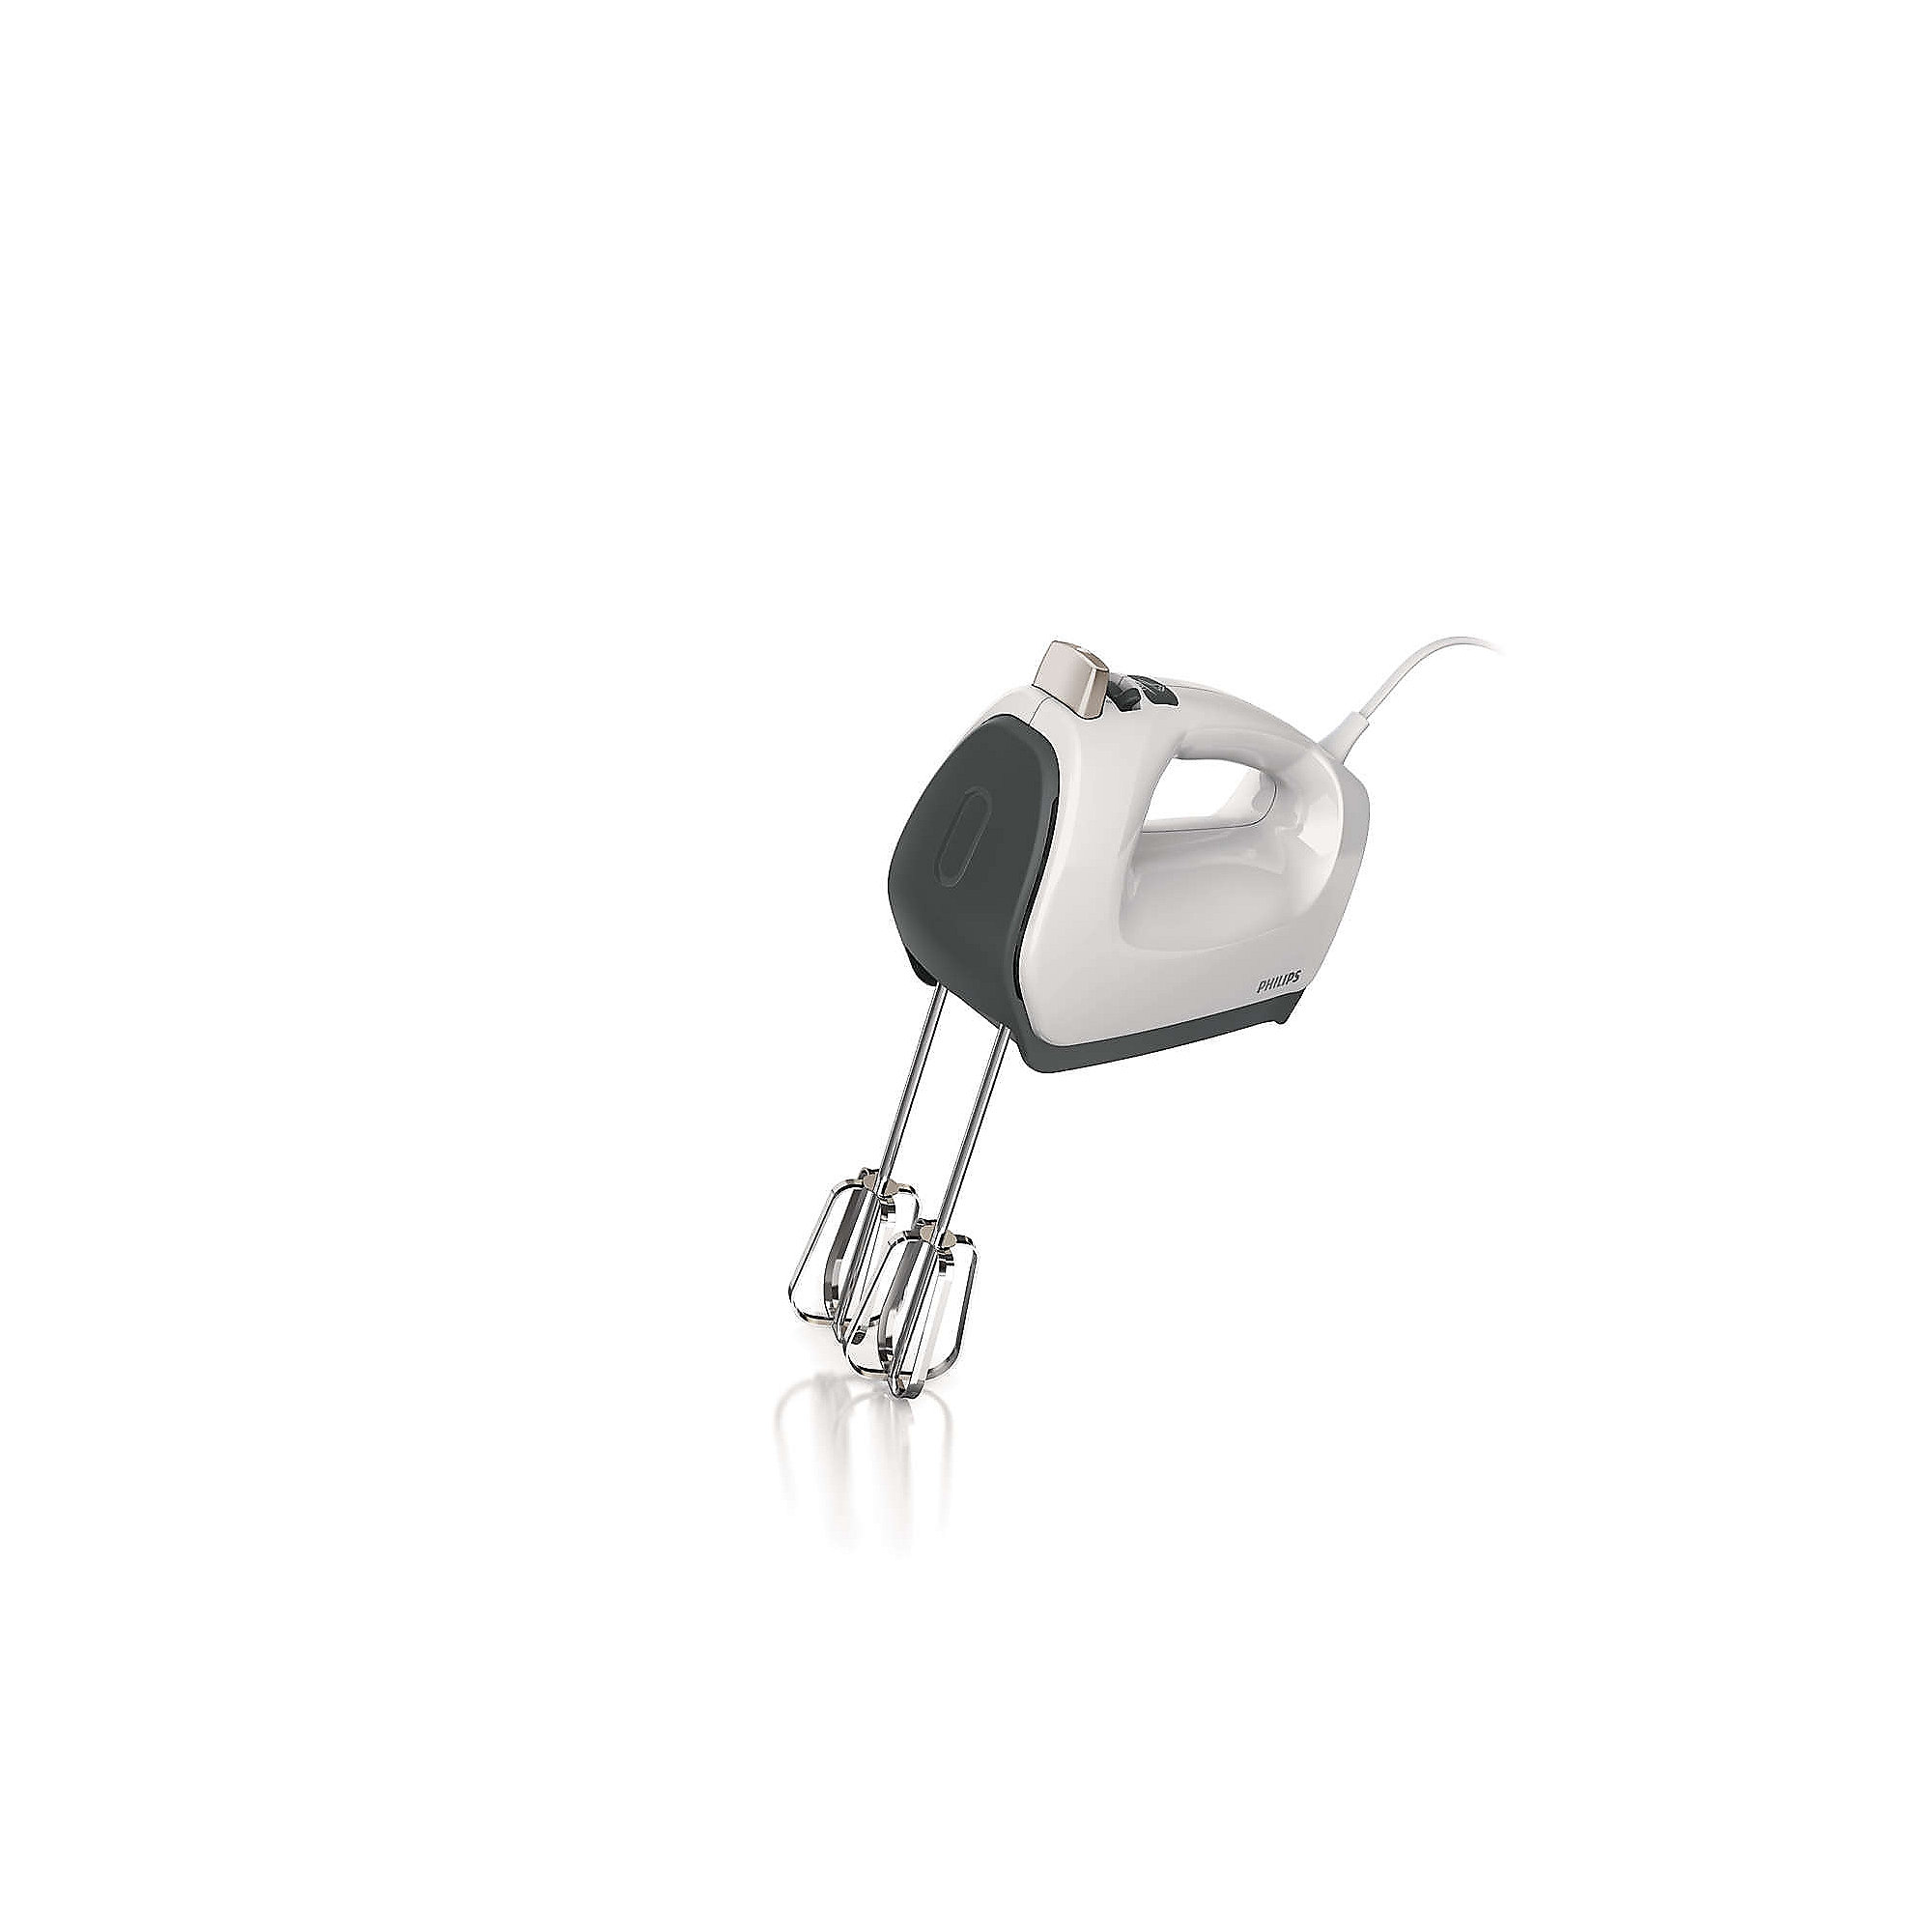 Philips Viva Collection HR1572/50 Handmixer 550 W weiß